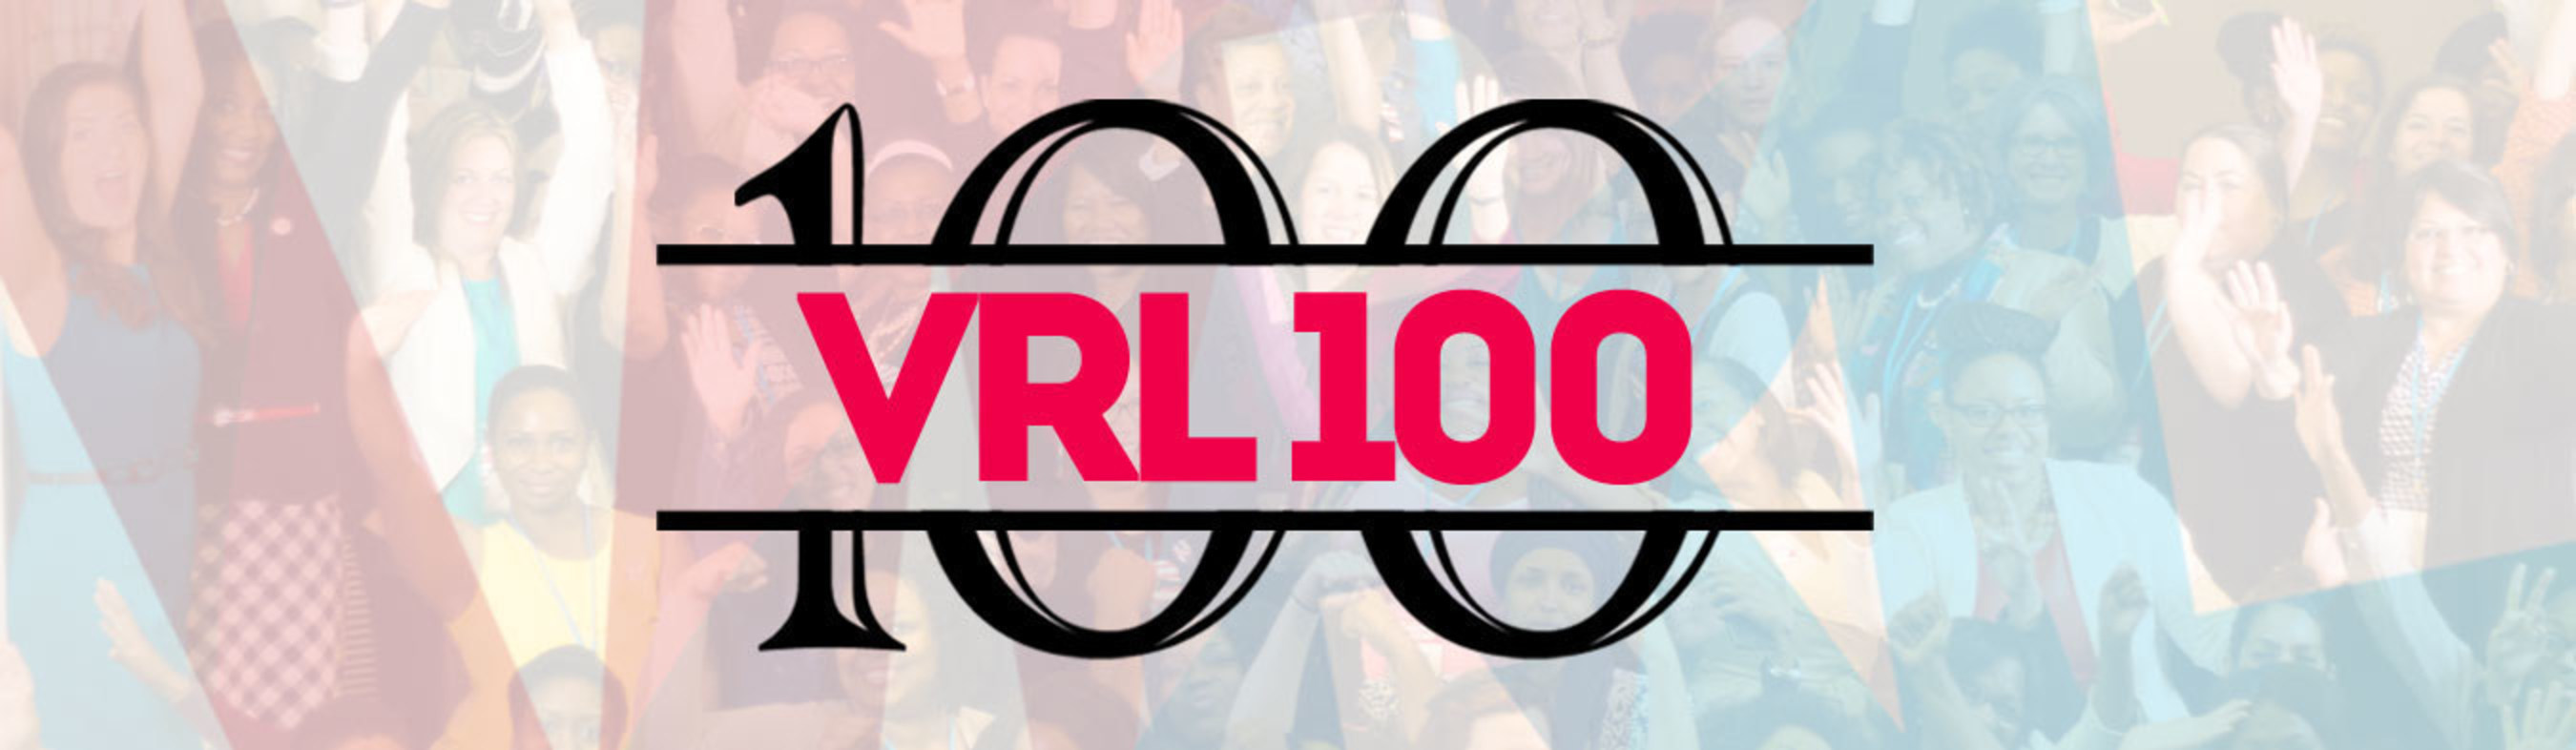 VoteRunLead Celebrates Year One; Announces Fall Live Web Line-Up and The VRL 100